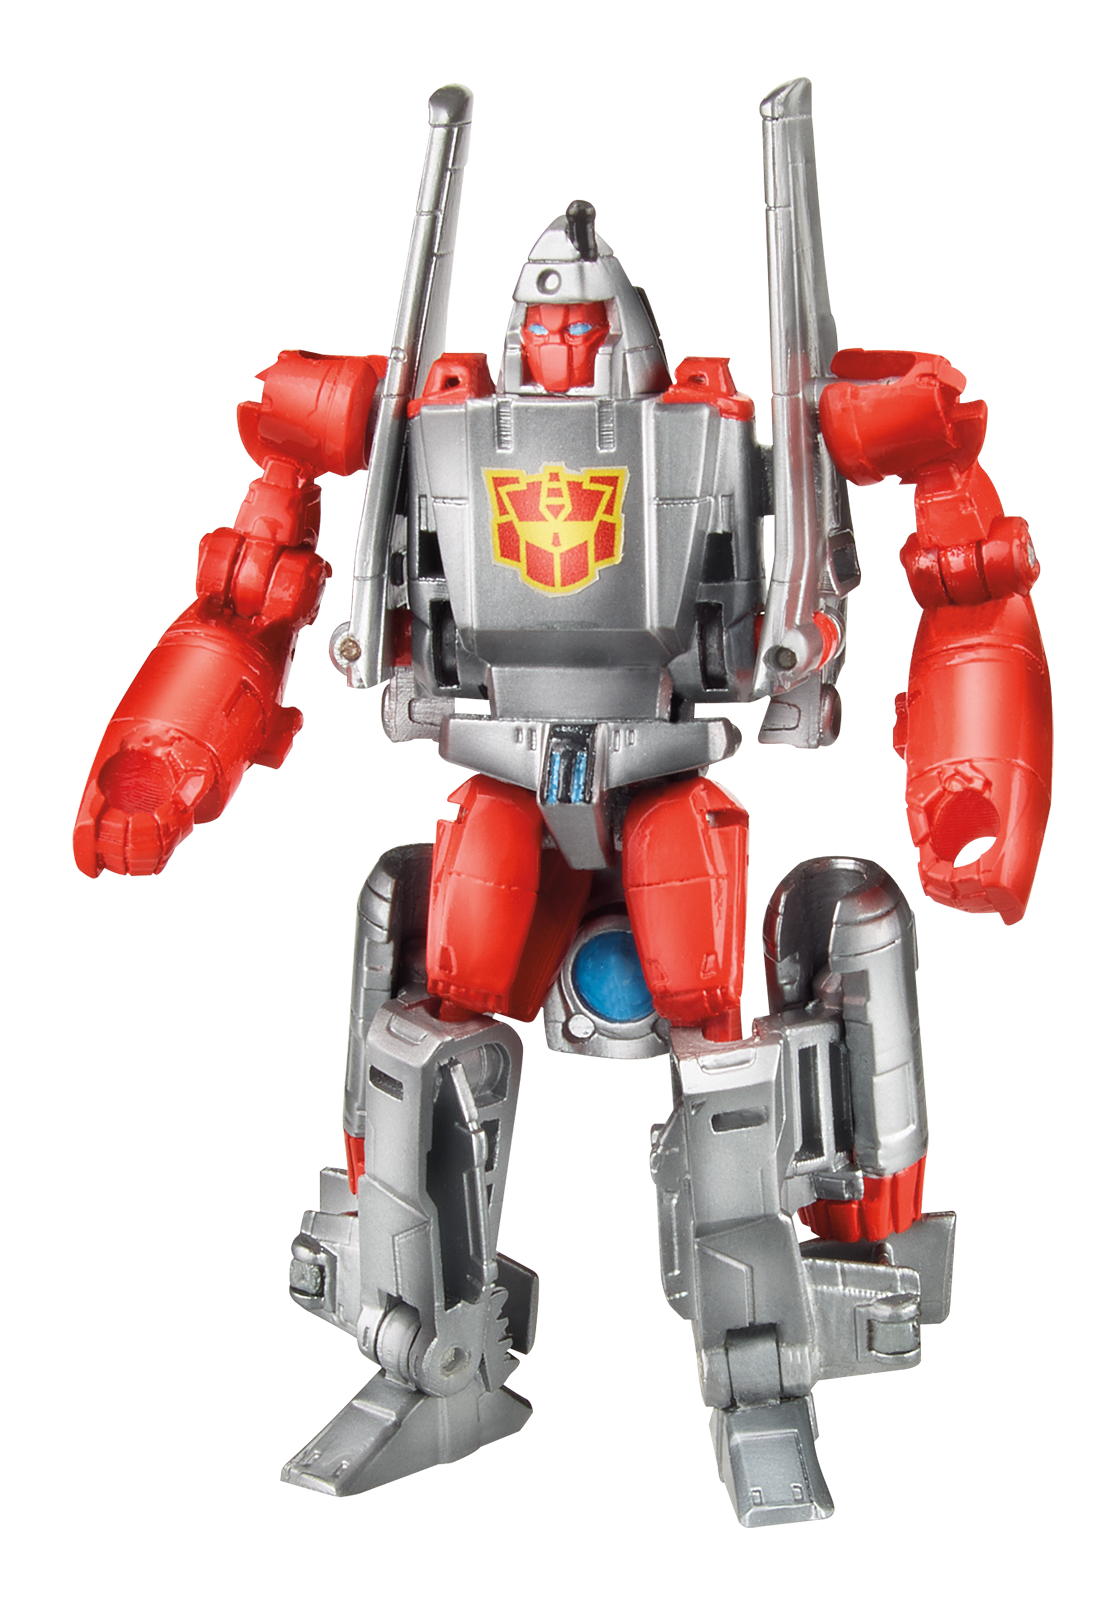 Clip combiner wars thunder. Generations g powerglide toy